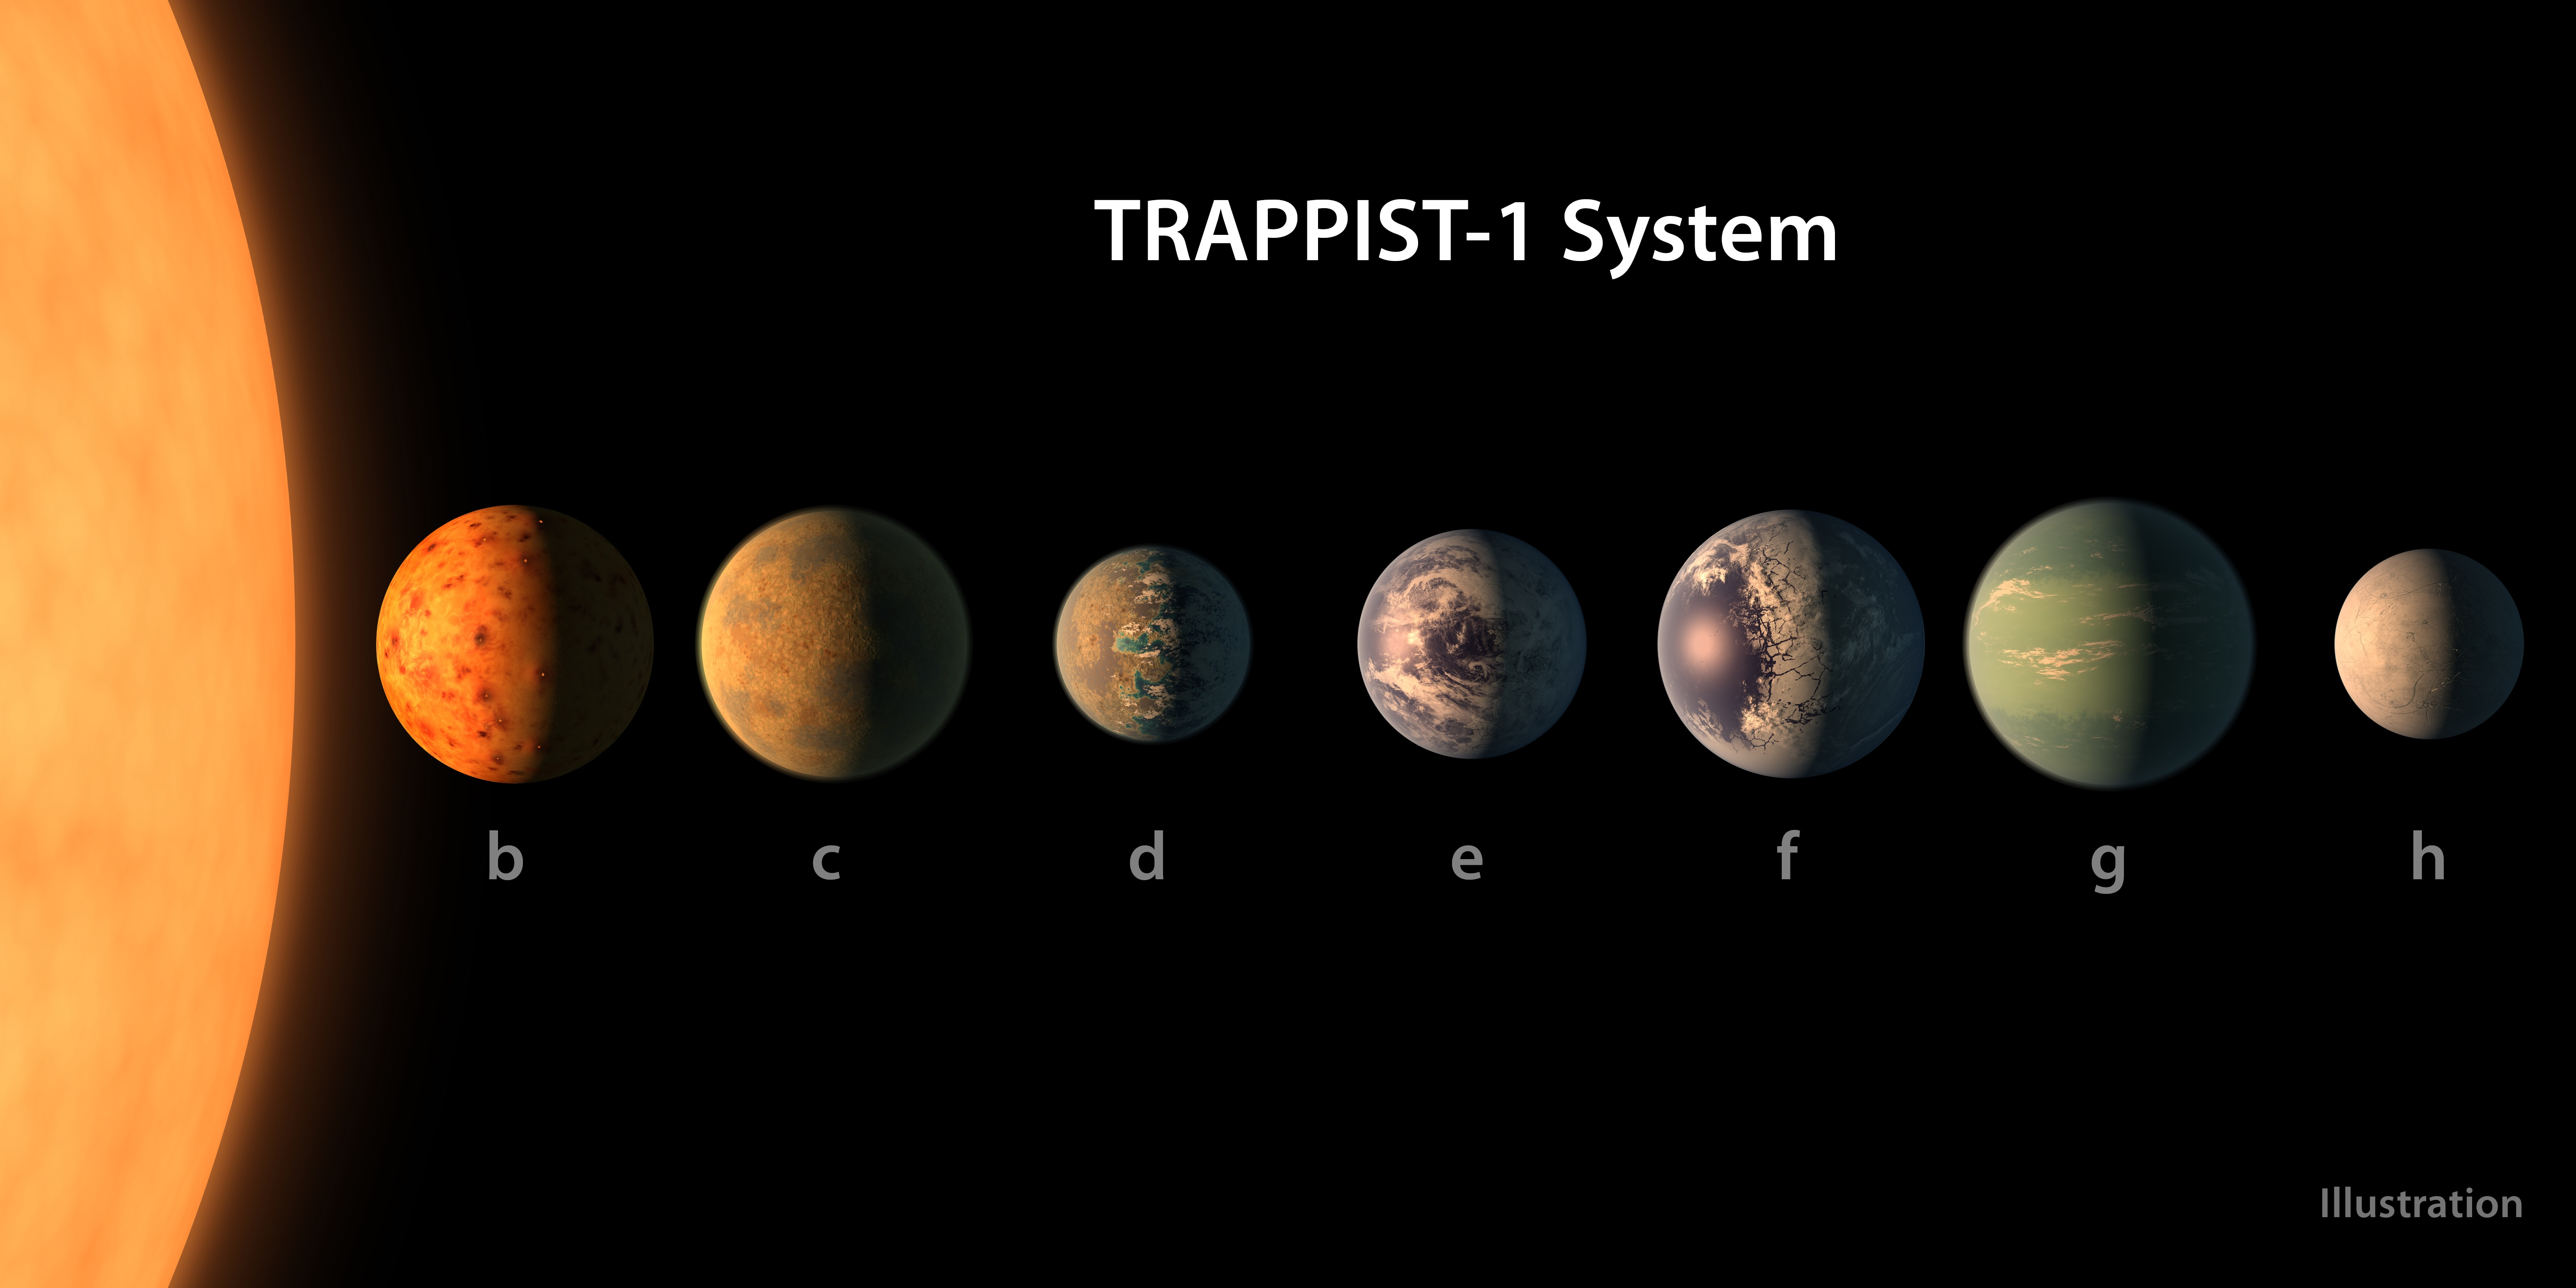 Nearby System Has 7 Earth Sized Planets Several In The Habitable